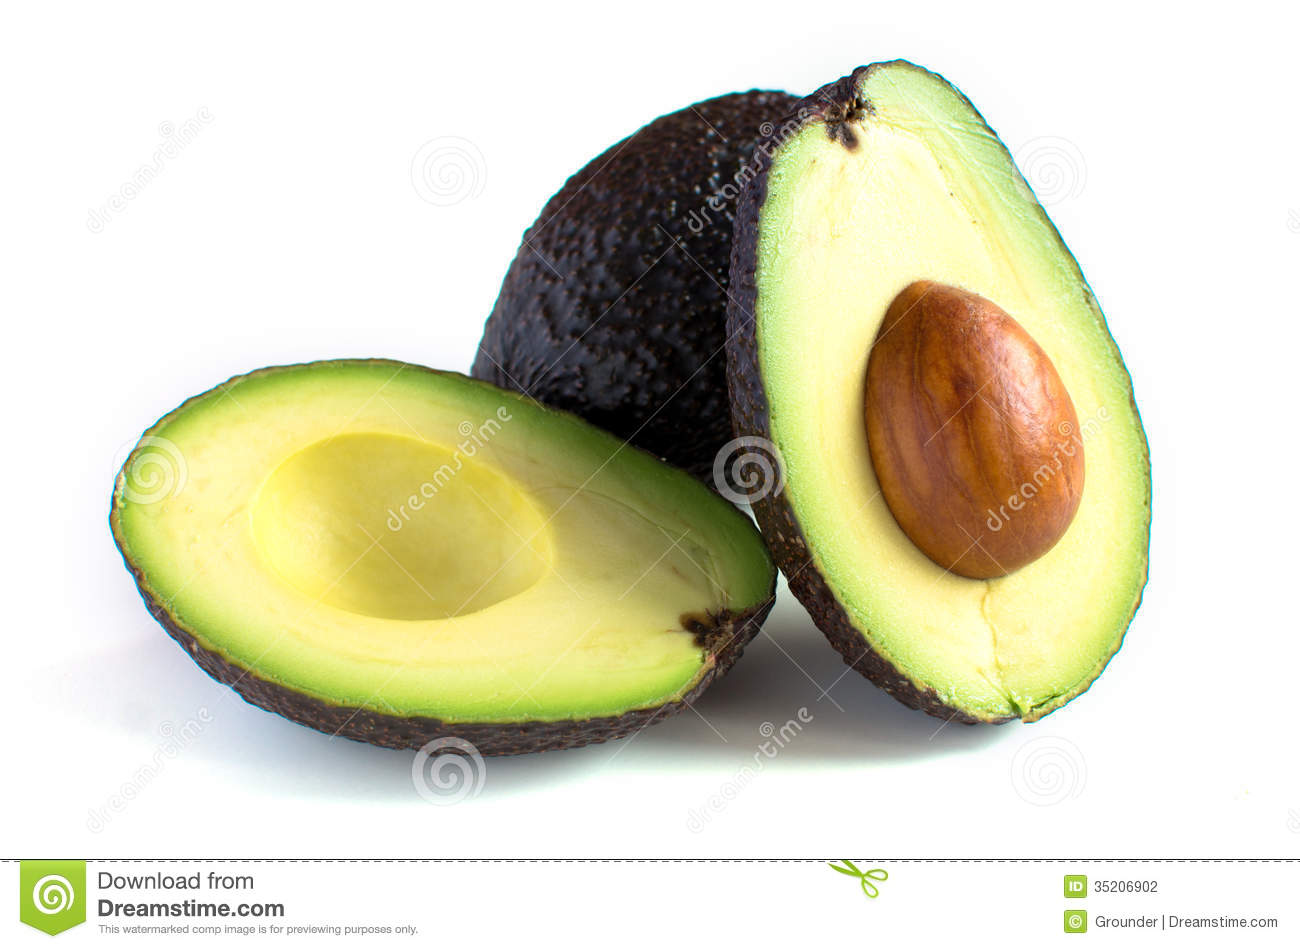 how to cut an avocado in half